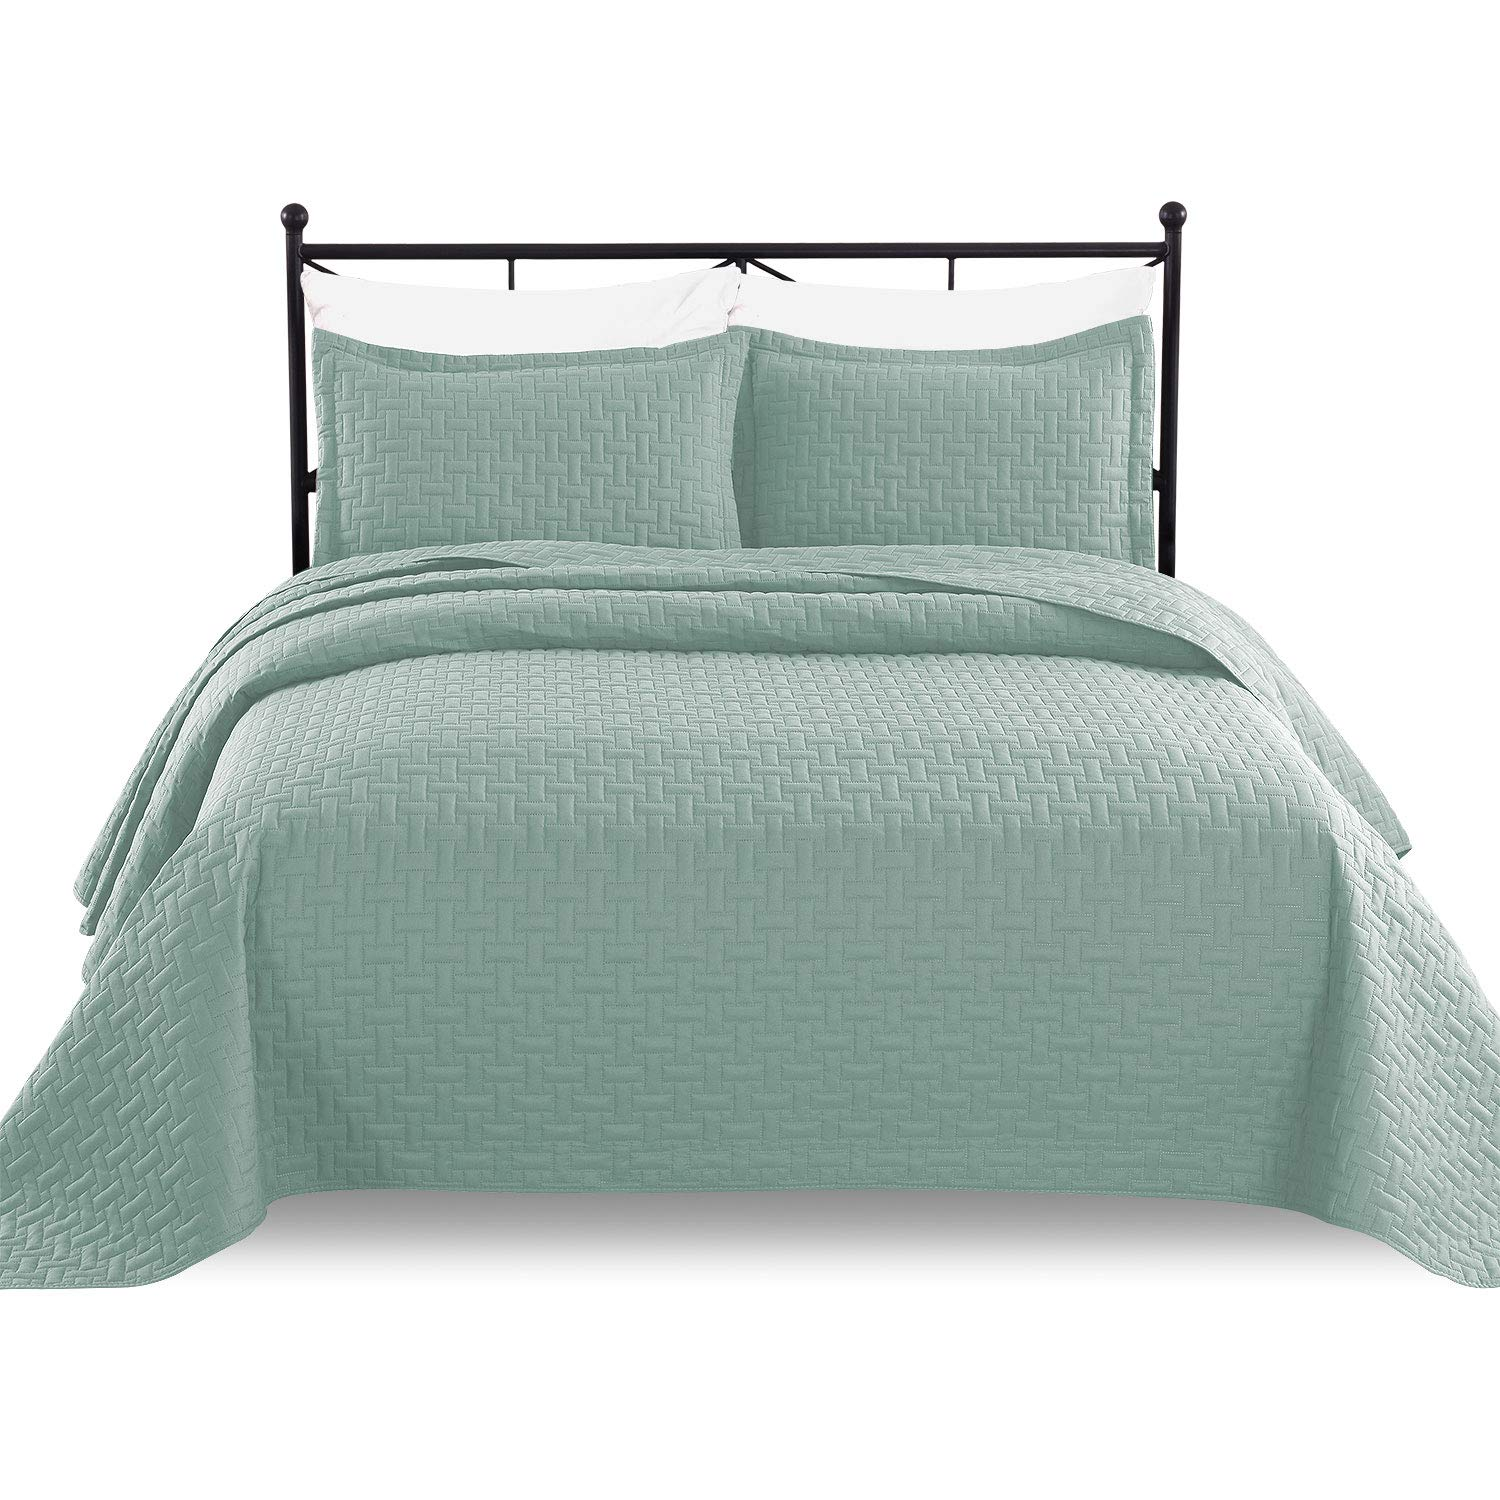 Luxe Bedding 3-piece Oversized Quilted Bedspread Coverlet Set (Full/Queen, Spa Blue)